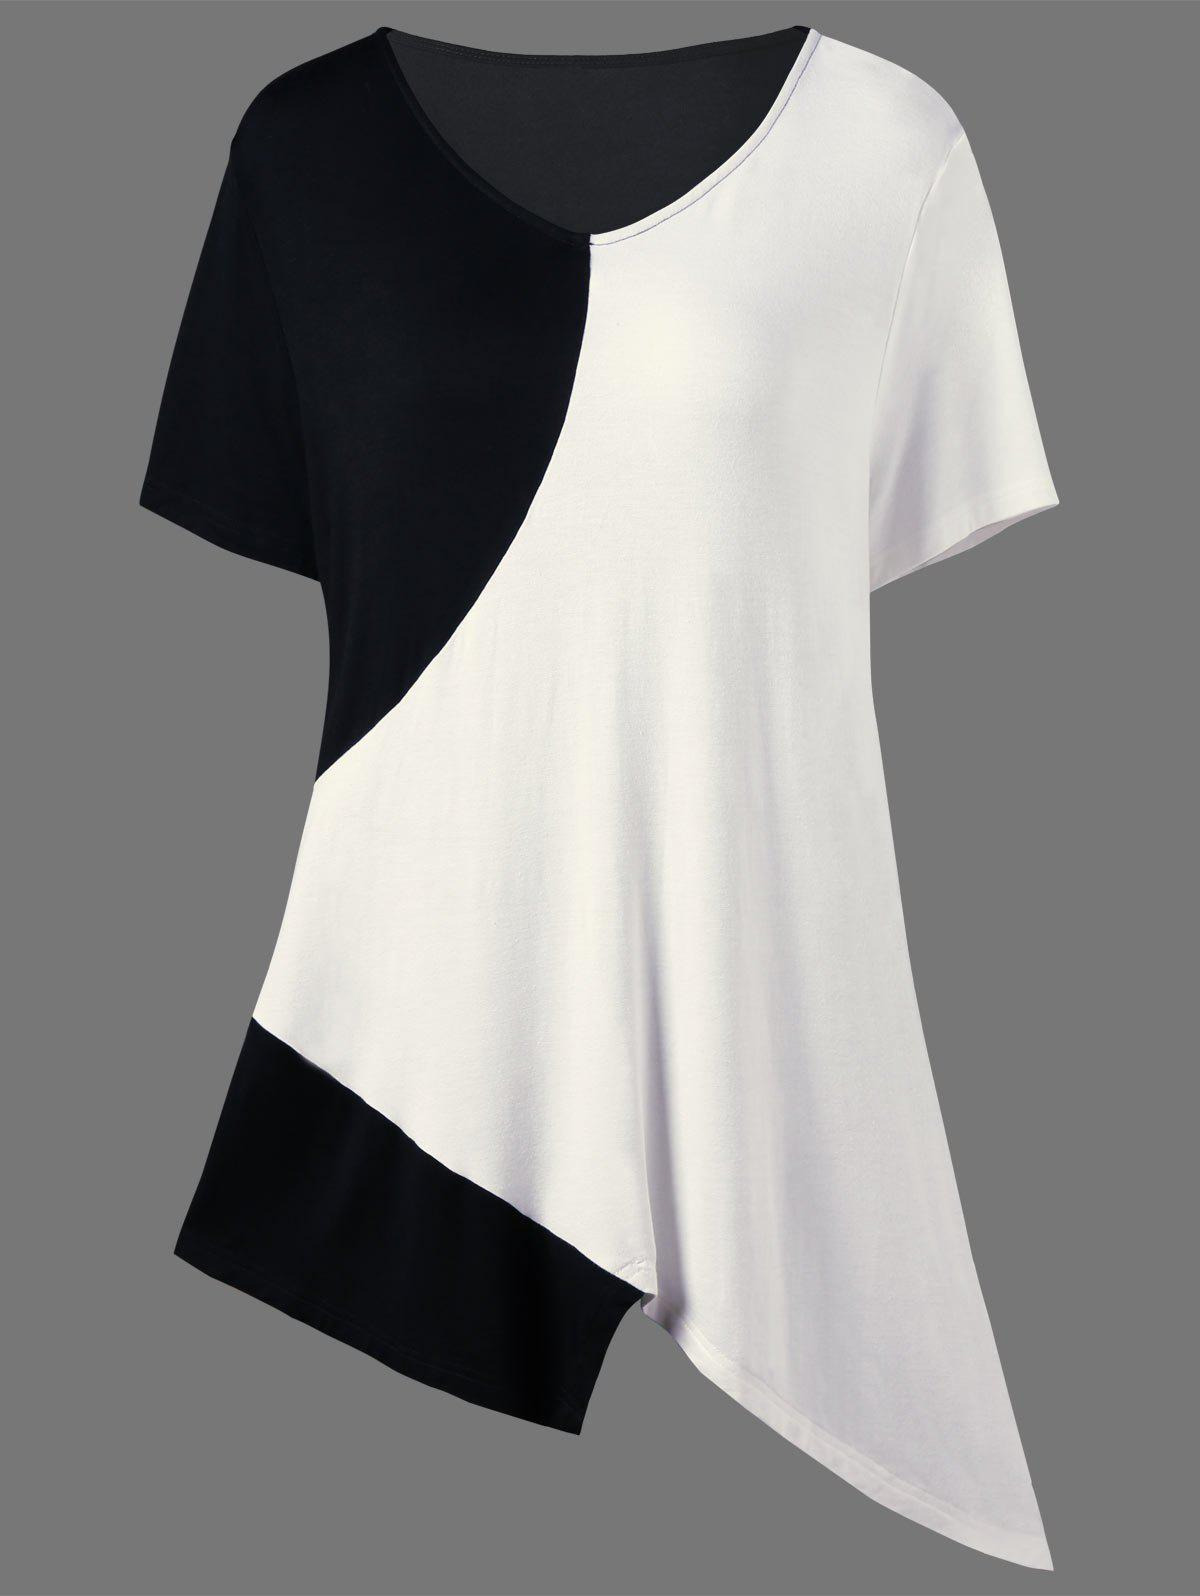 Asymmetrical Color Block Plus Size Long T-ShirtWOMEN<br><br>Size: 3XL; Color: WHITE AND BLACK; Material: Cotton,Spandex; Shirt Length: Long; Sleeve Length: Short; Collar: V-Neck; Style: Casual; Season: Summer; Pattern Type: Others; Weight: 0.2000kg; Package Contents: 1 x T-Shirt;